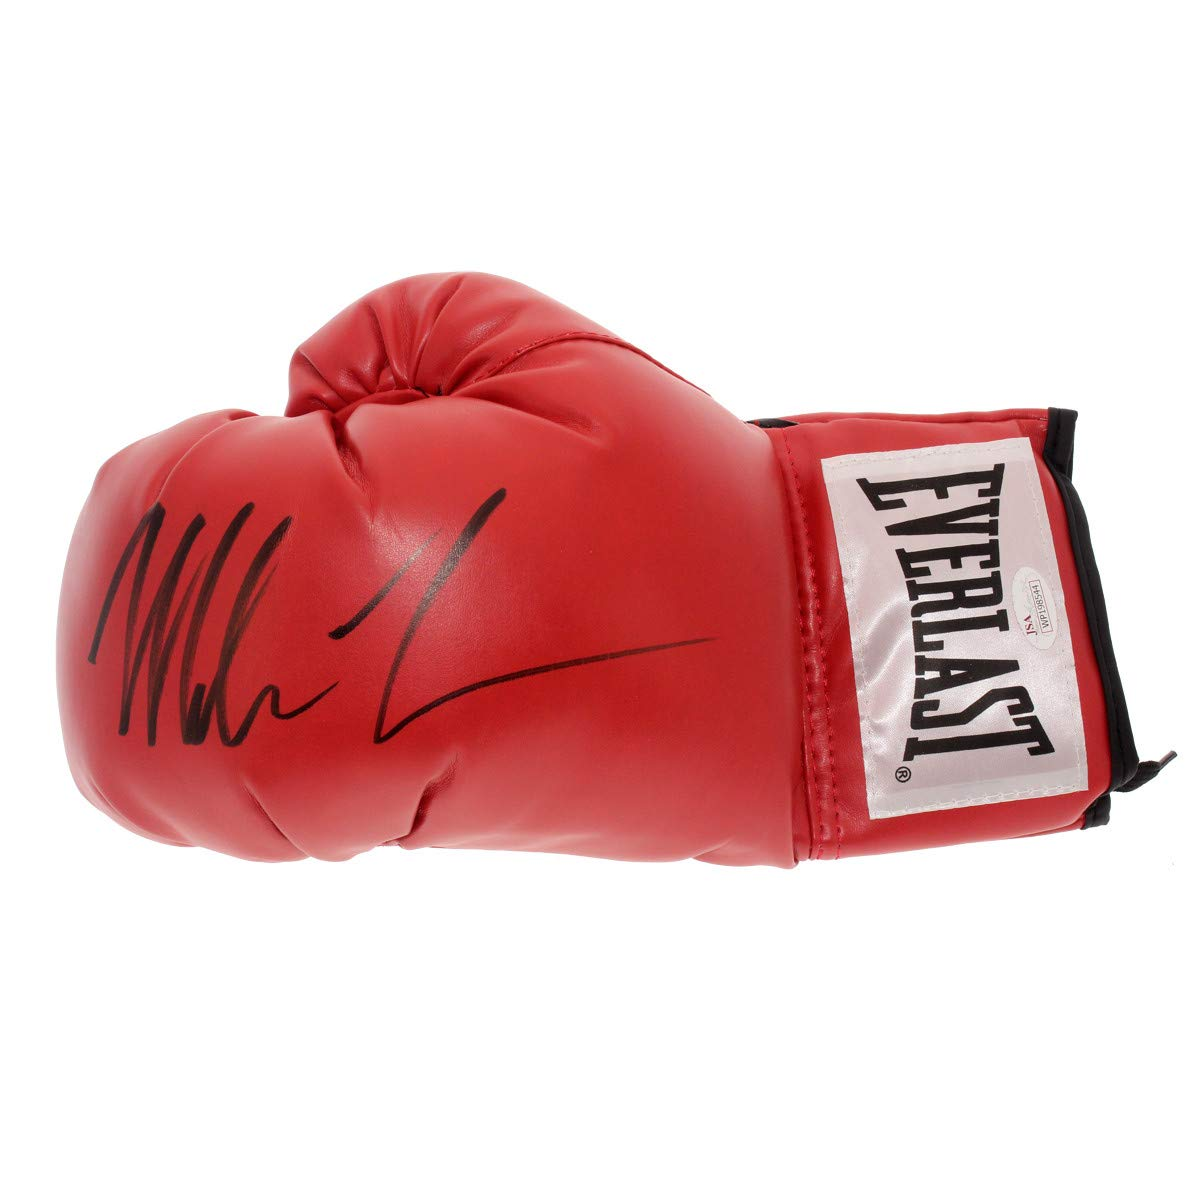 b489baee6d9 Mike Tyson Autographed Signed Everlast Boxing Glove - JSA Certified  Authentic at Amazon s Sports Collectibles Store